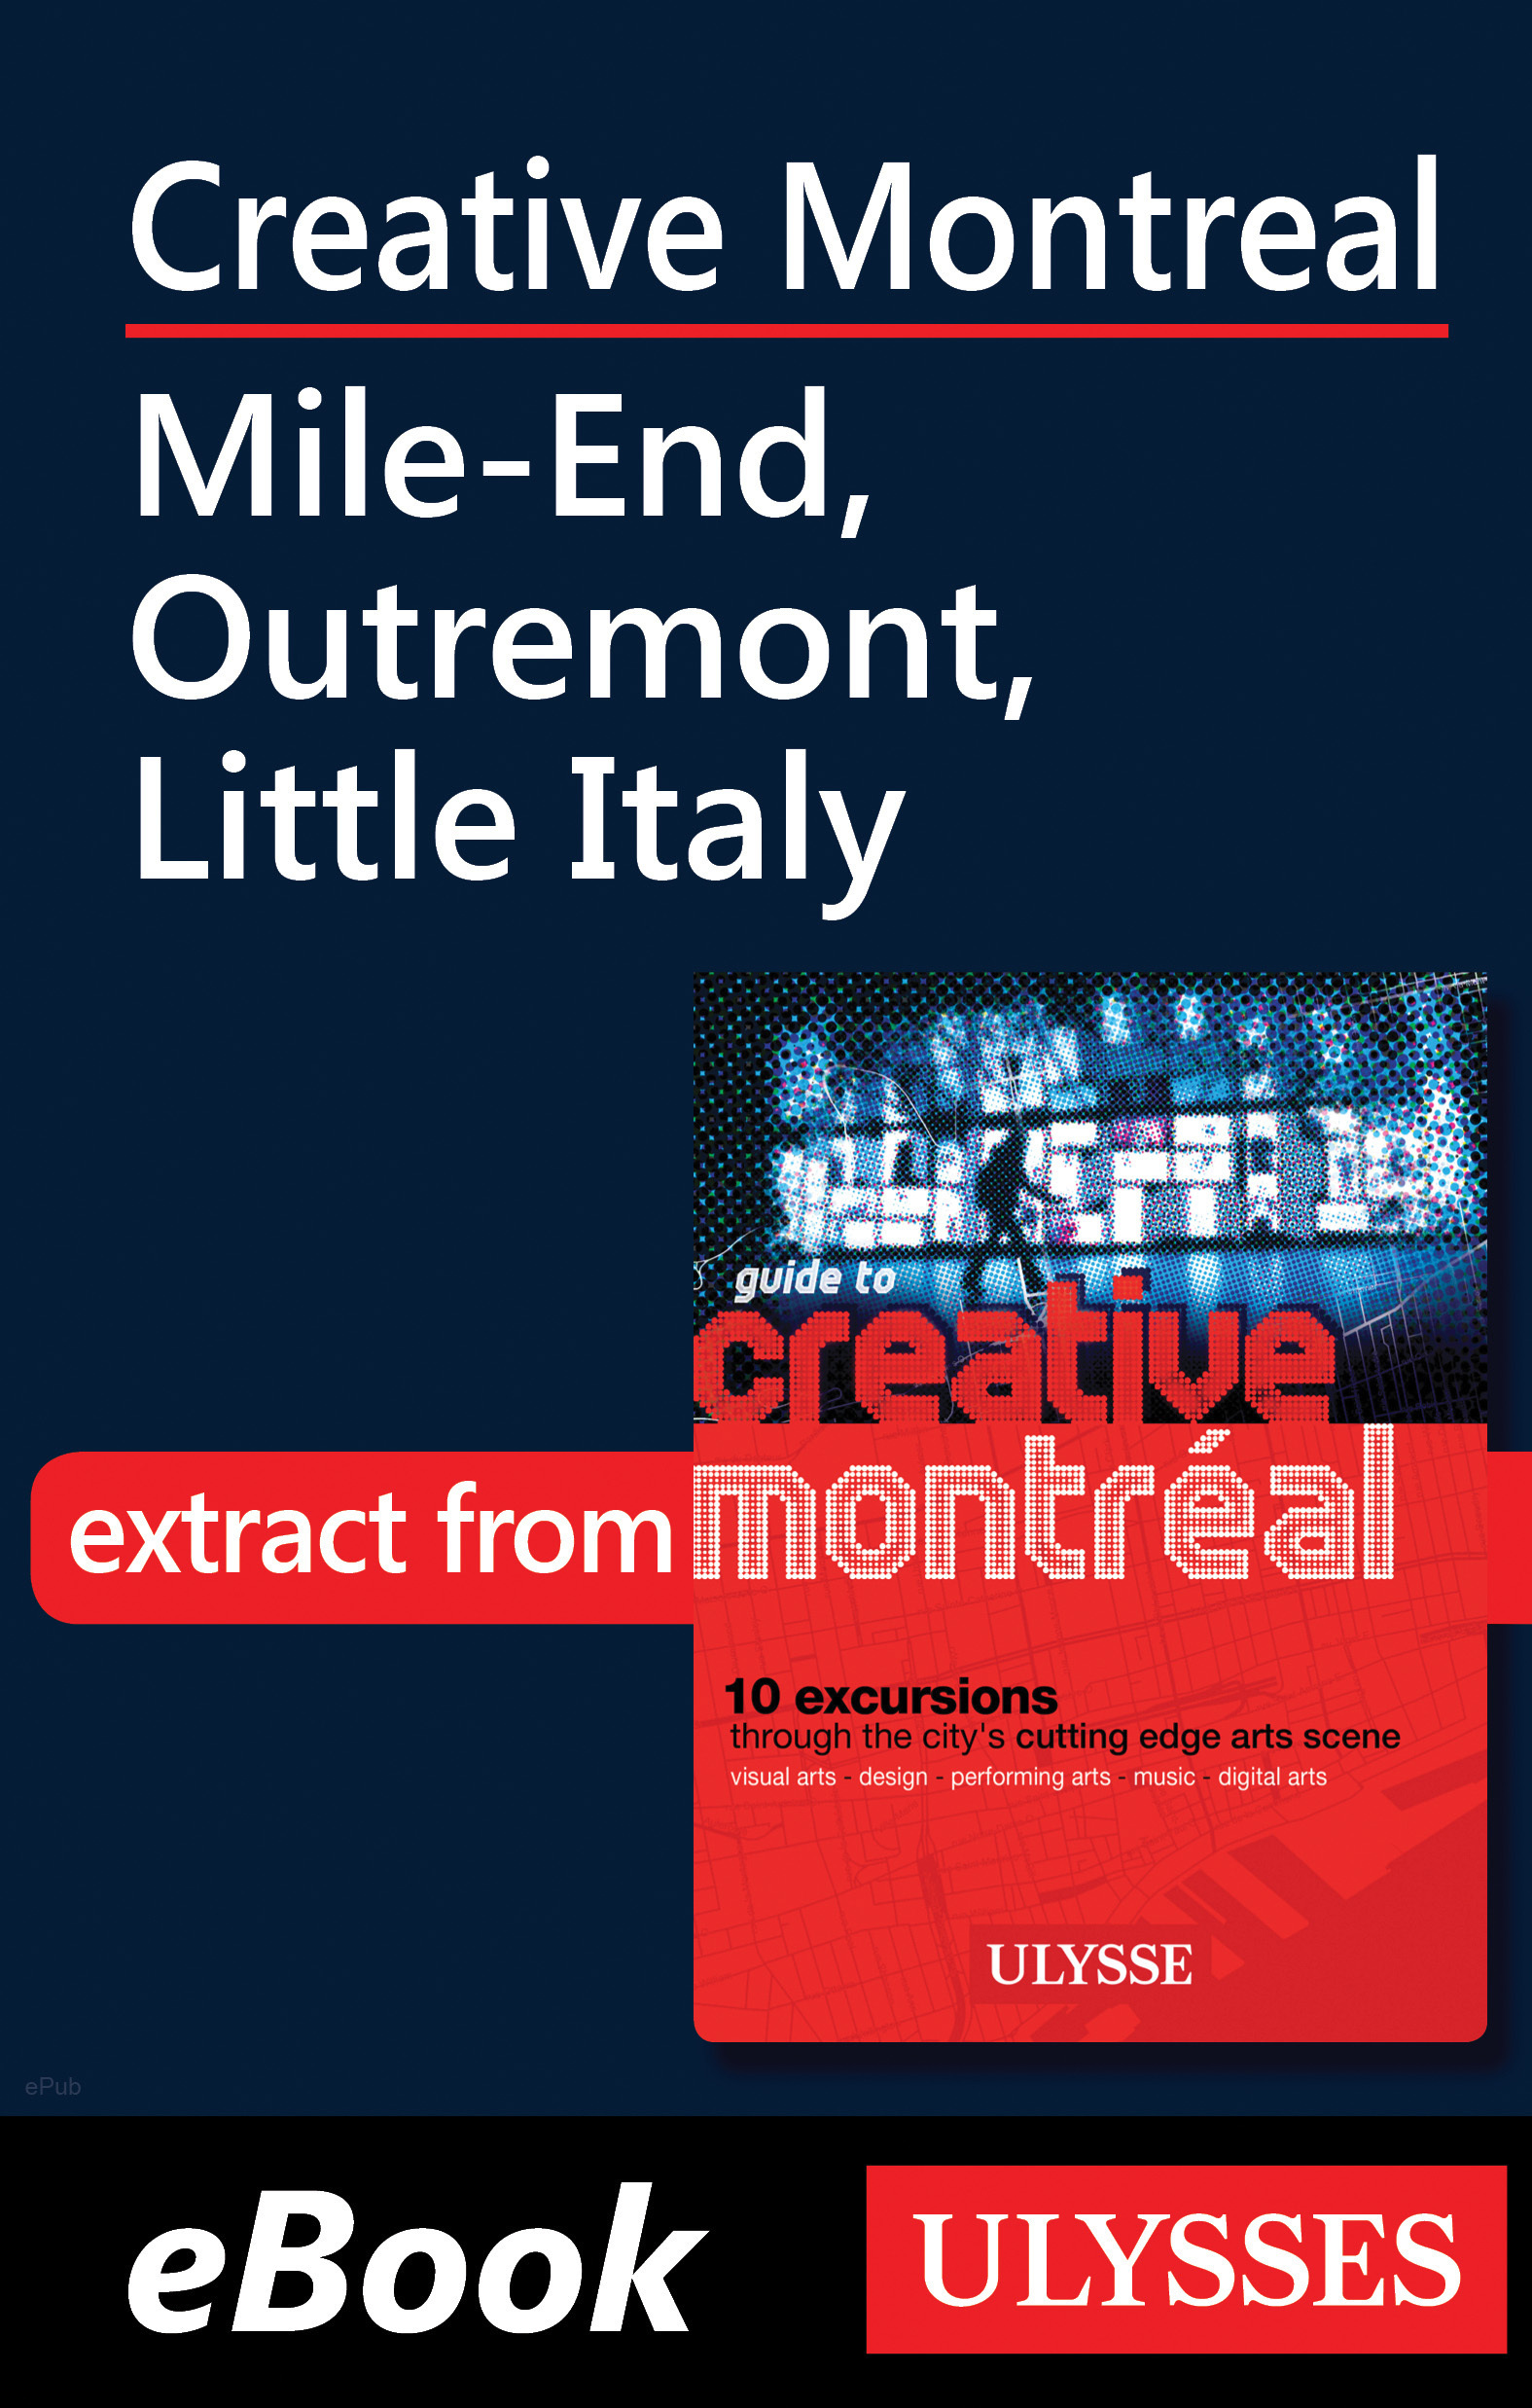 Creative Montreal - Mile-End, Outremont, Little Italy